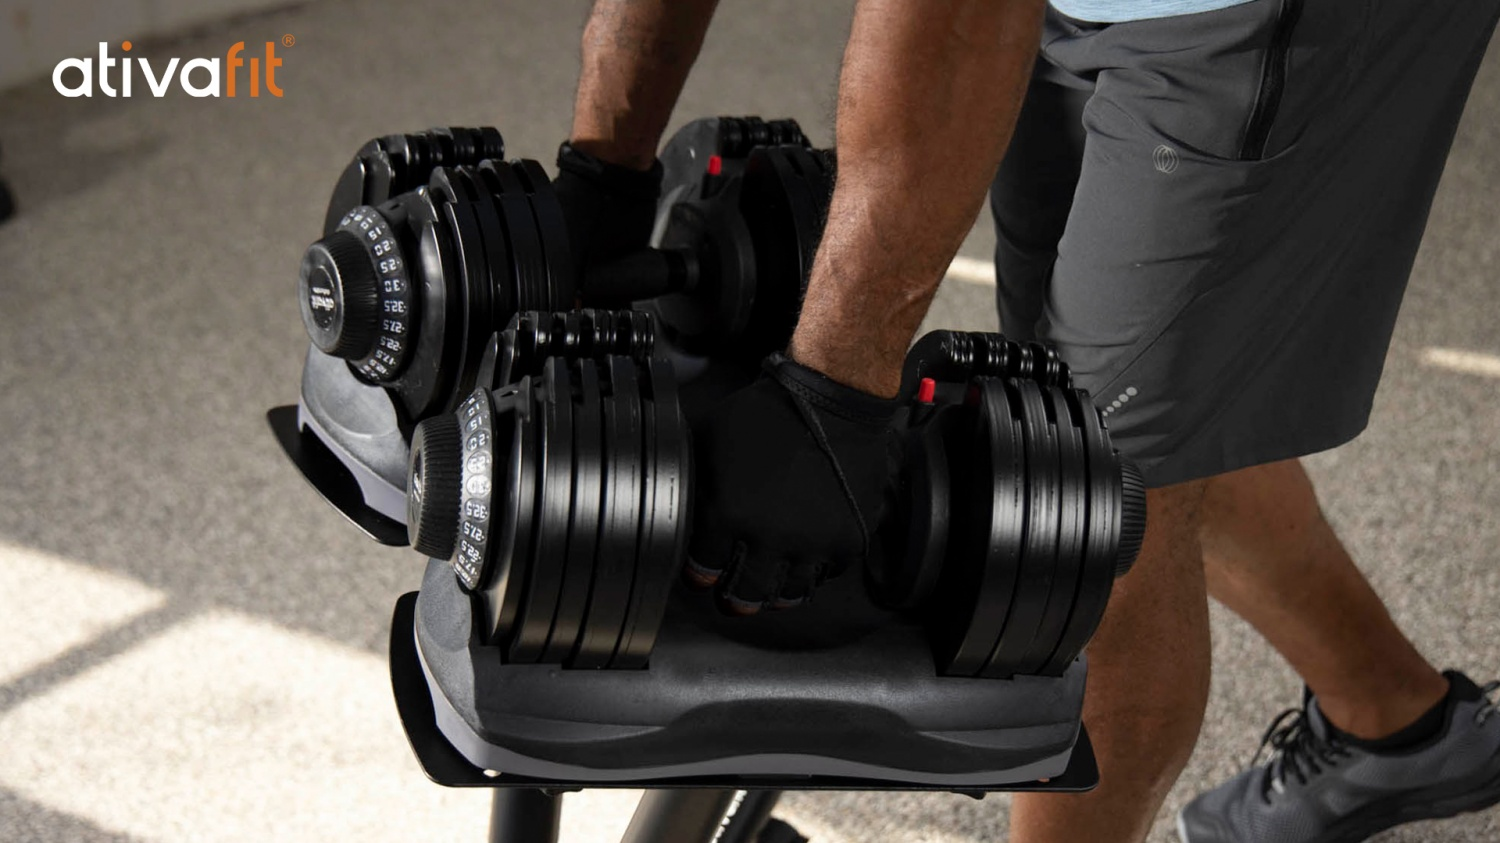 ATIVAFIT Adjustable Dumbbell, Exercise Bike Would Complete Your At-Home Gym in No Time!